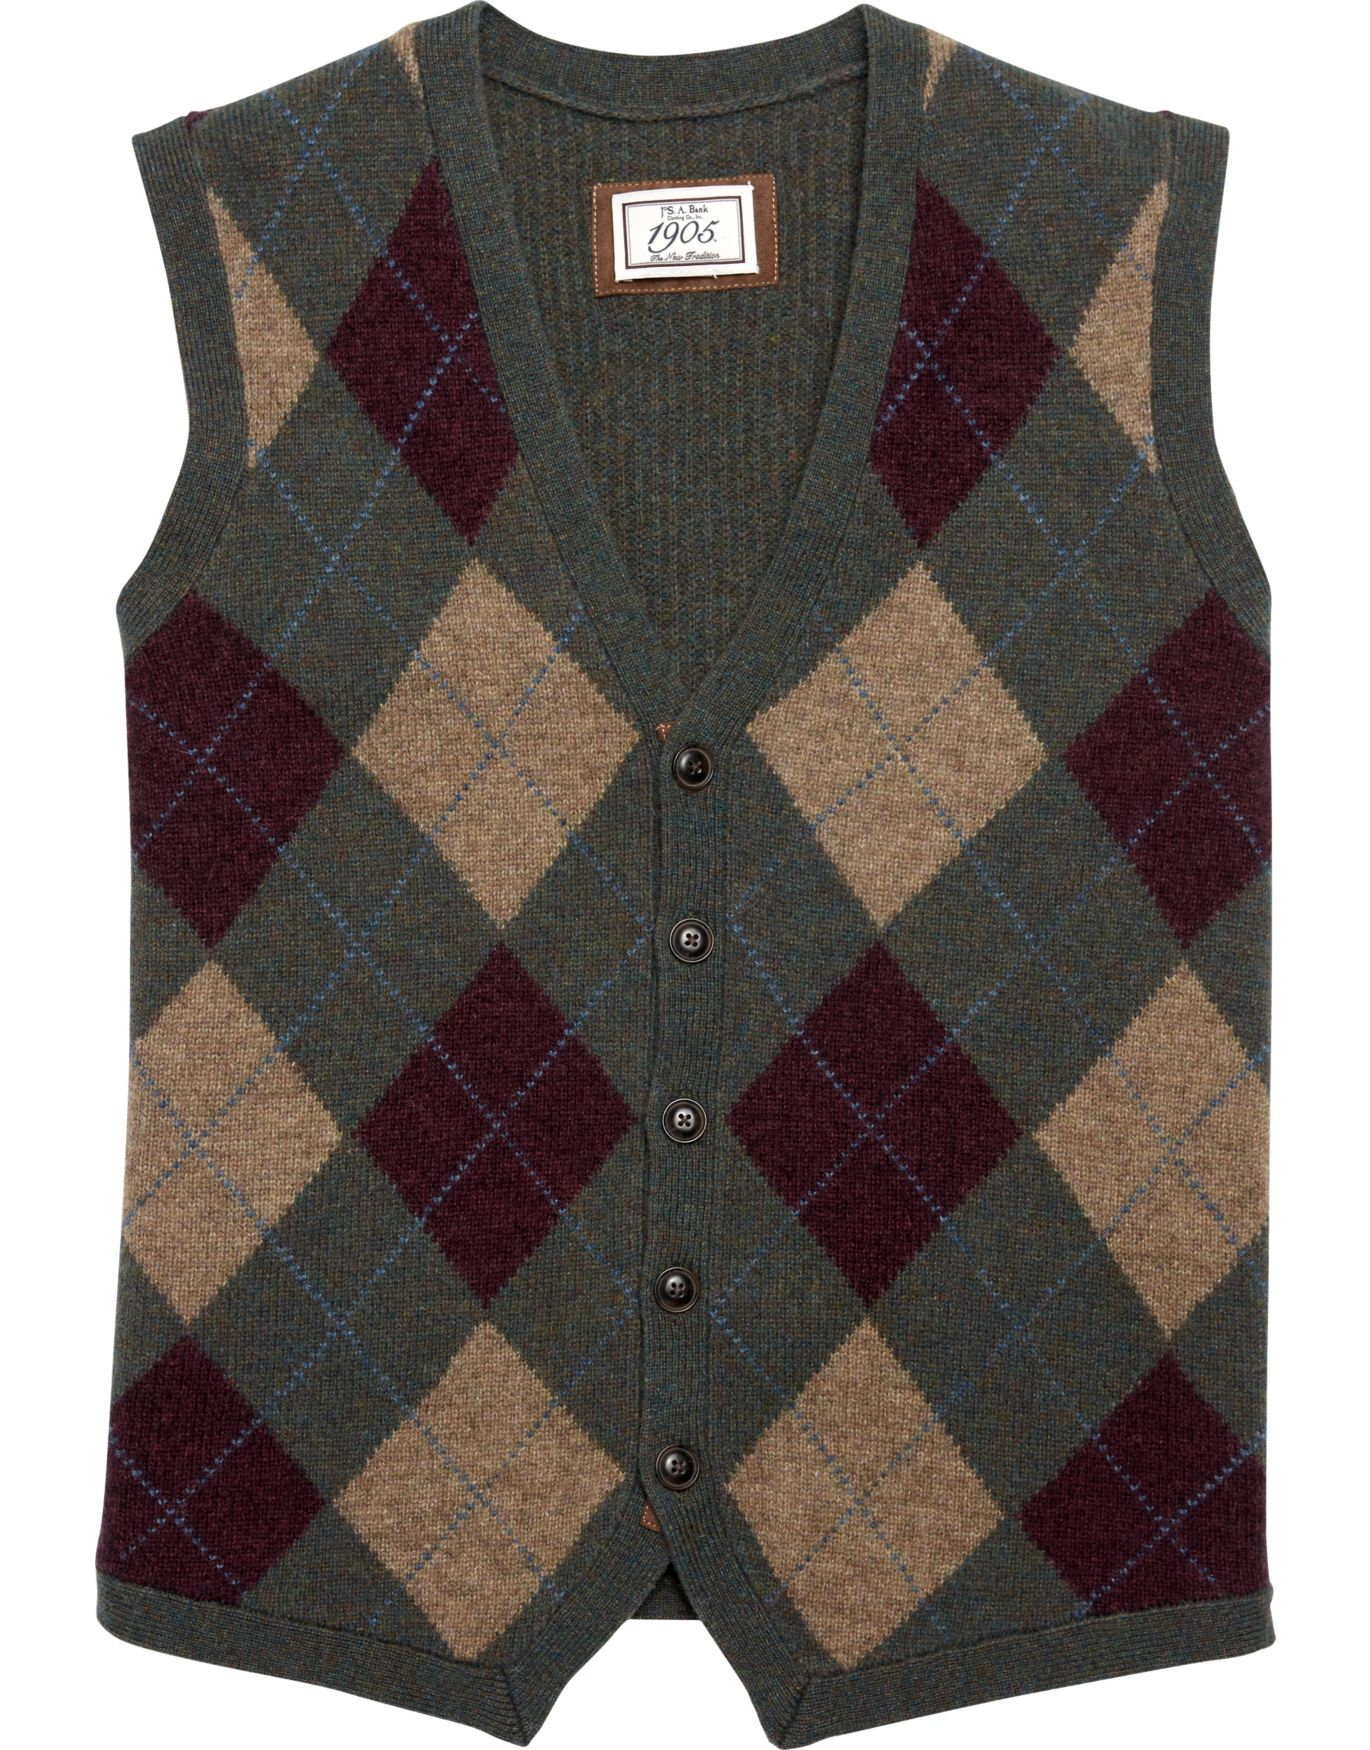 1905 Argyle Sweater Vest - Big and Tall CLEARANCE - All Clearance ...